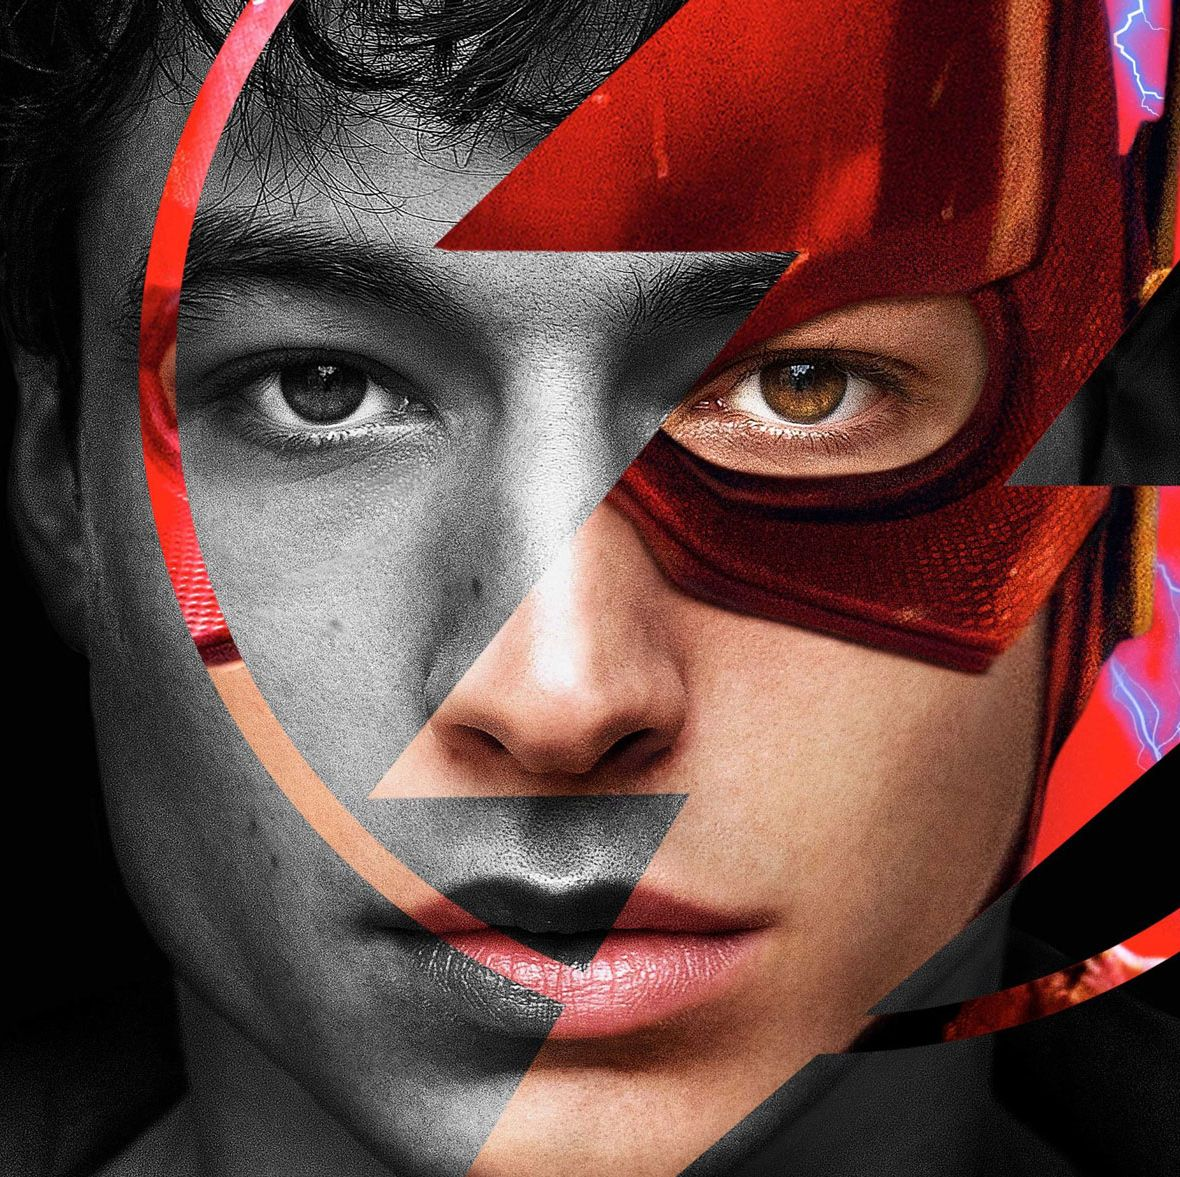 Worlds of DC Flash star Ezra Miller is taking up another big role to get the solo film on track